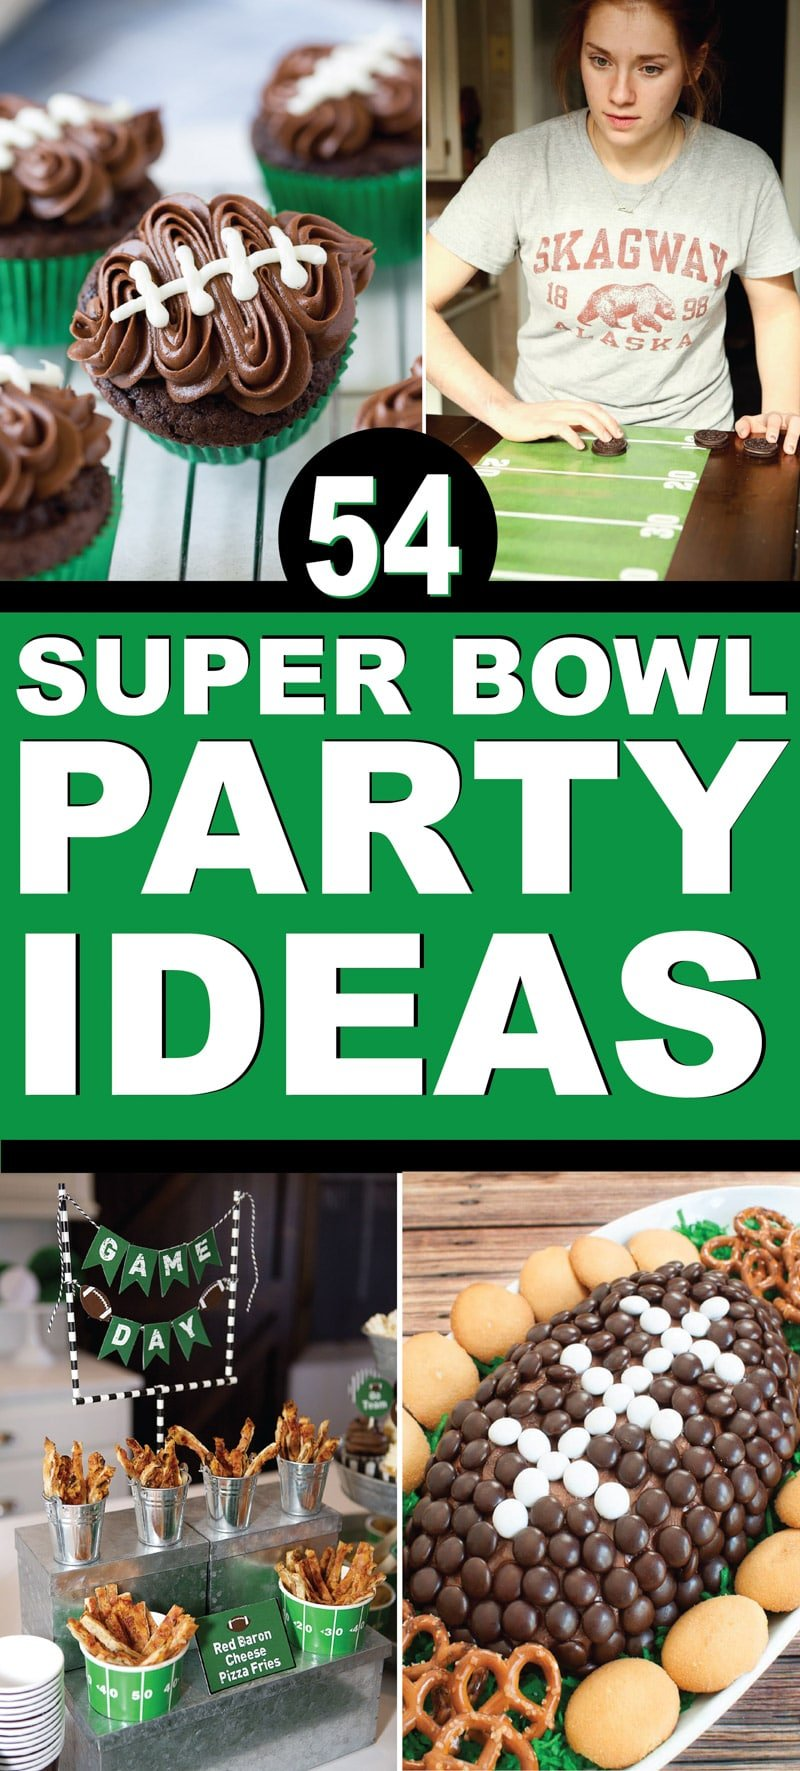 The best Super Bowl party ideas! Super Bowl party food, decorations, and games!